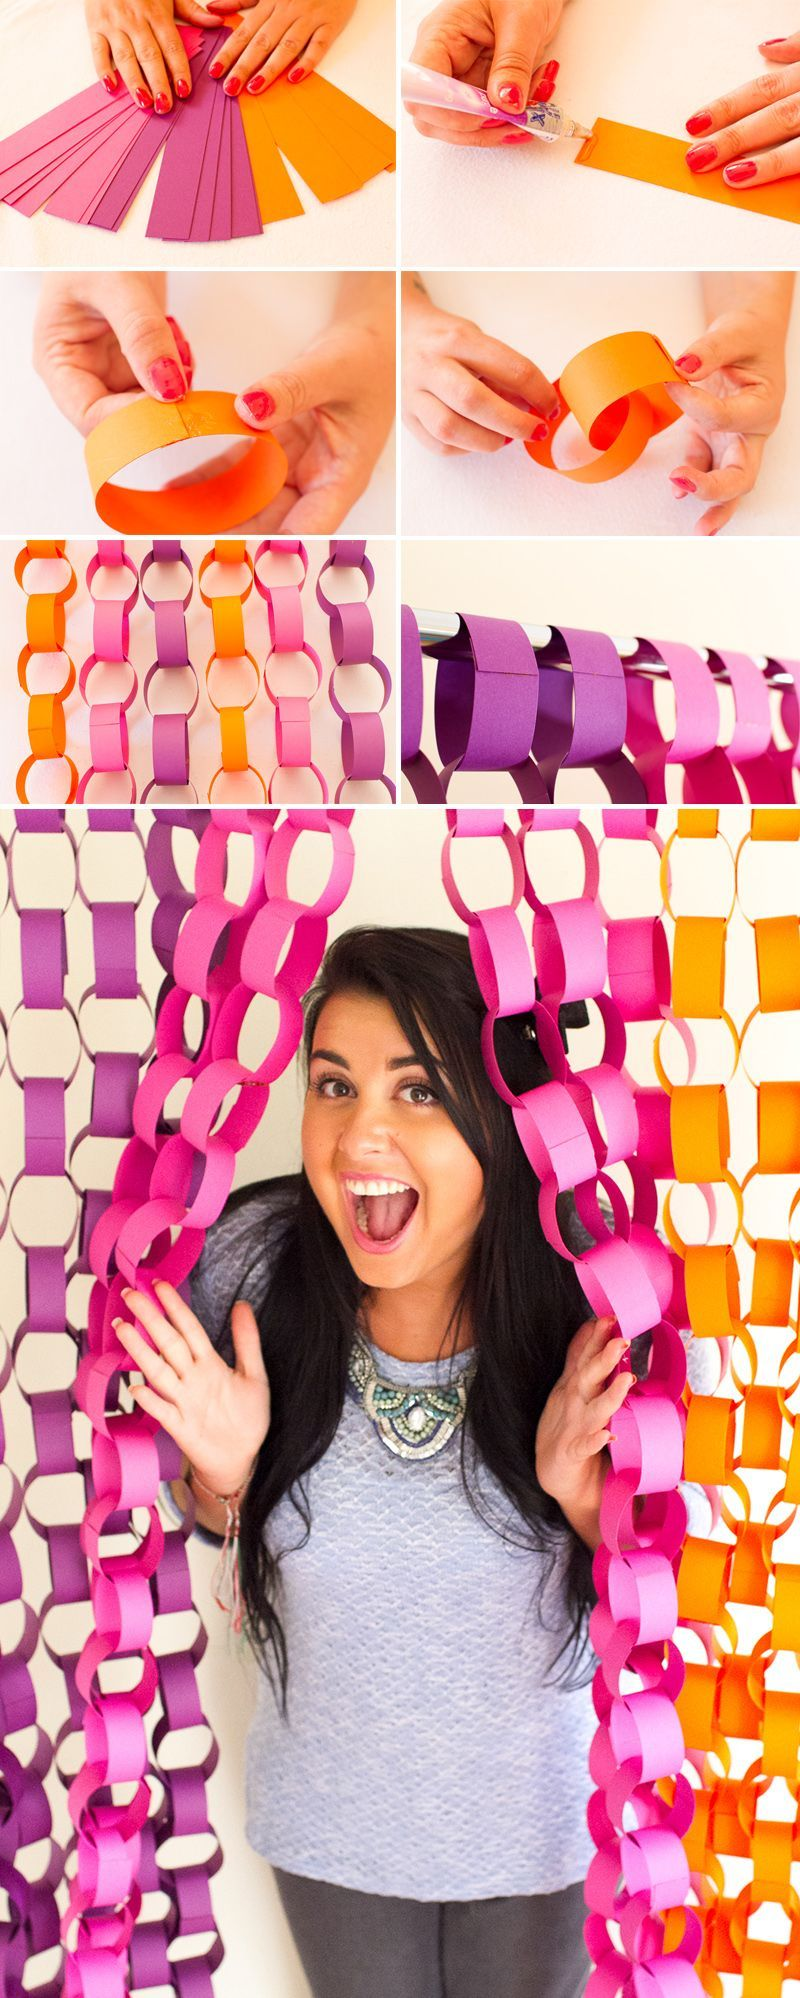 Paper Chain Photo Booth Backdrop Tutorial DIY Paper chain backdrop inspiration CollageDIY Paper chain backdrop inspiration Collage